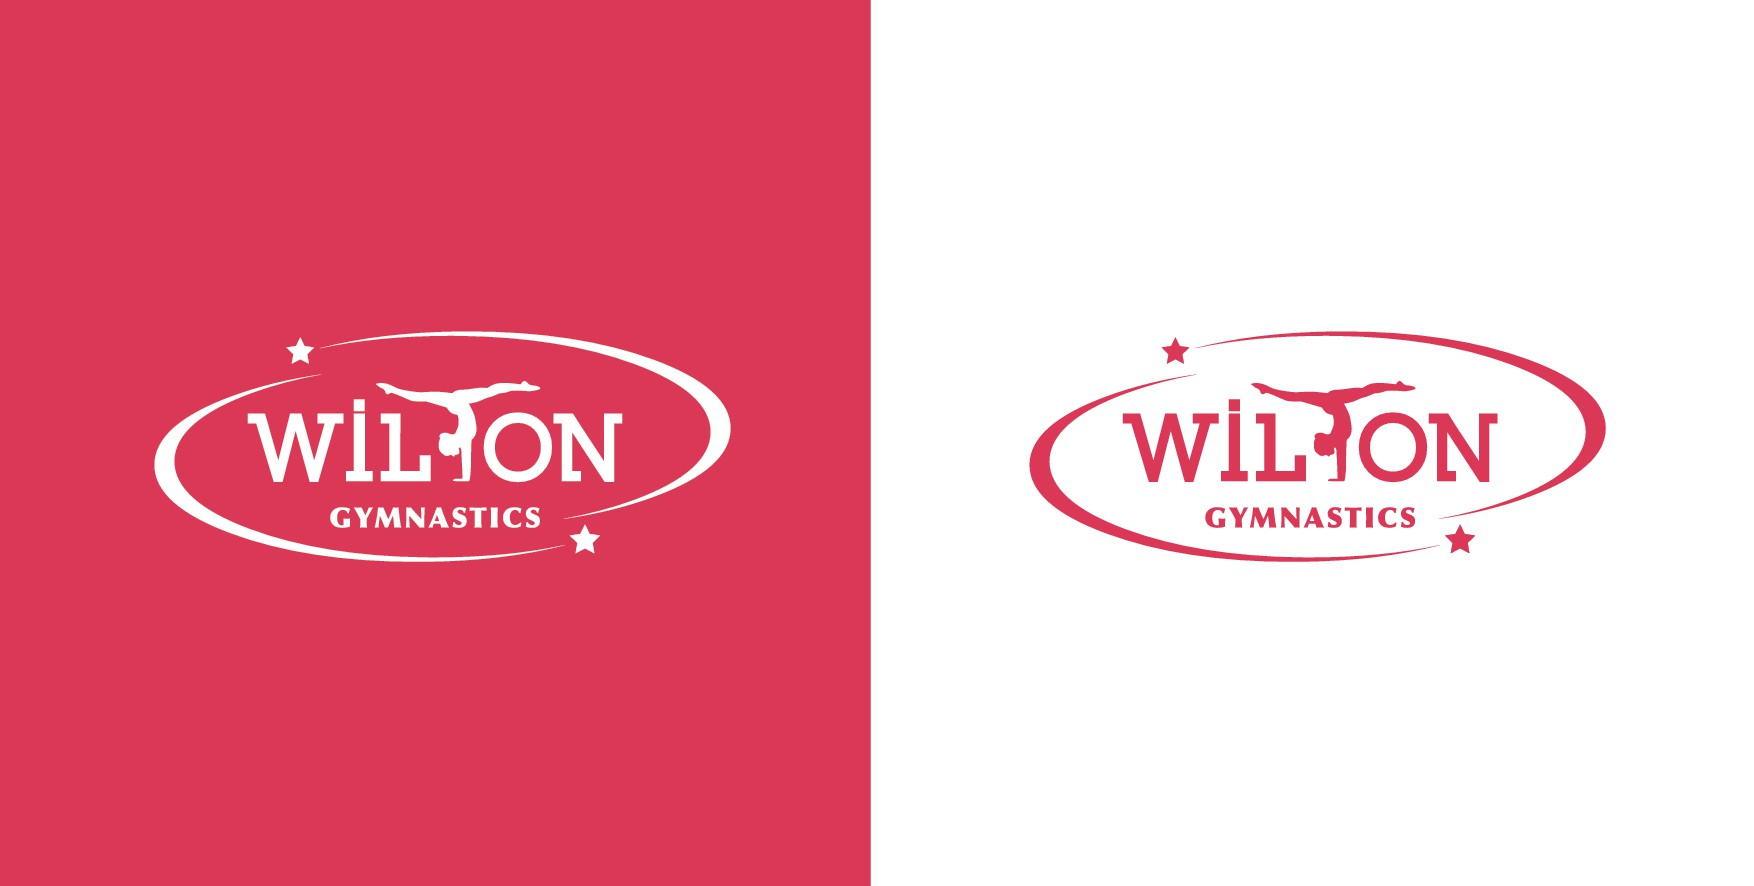 Come help design our team logo for our young enthusiastic gymnasts of Wilton CT.